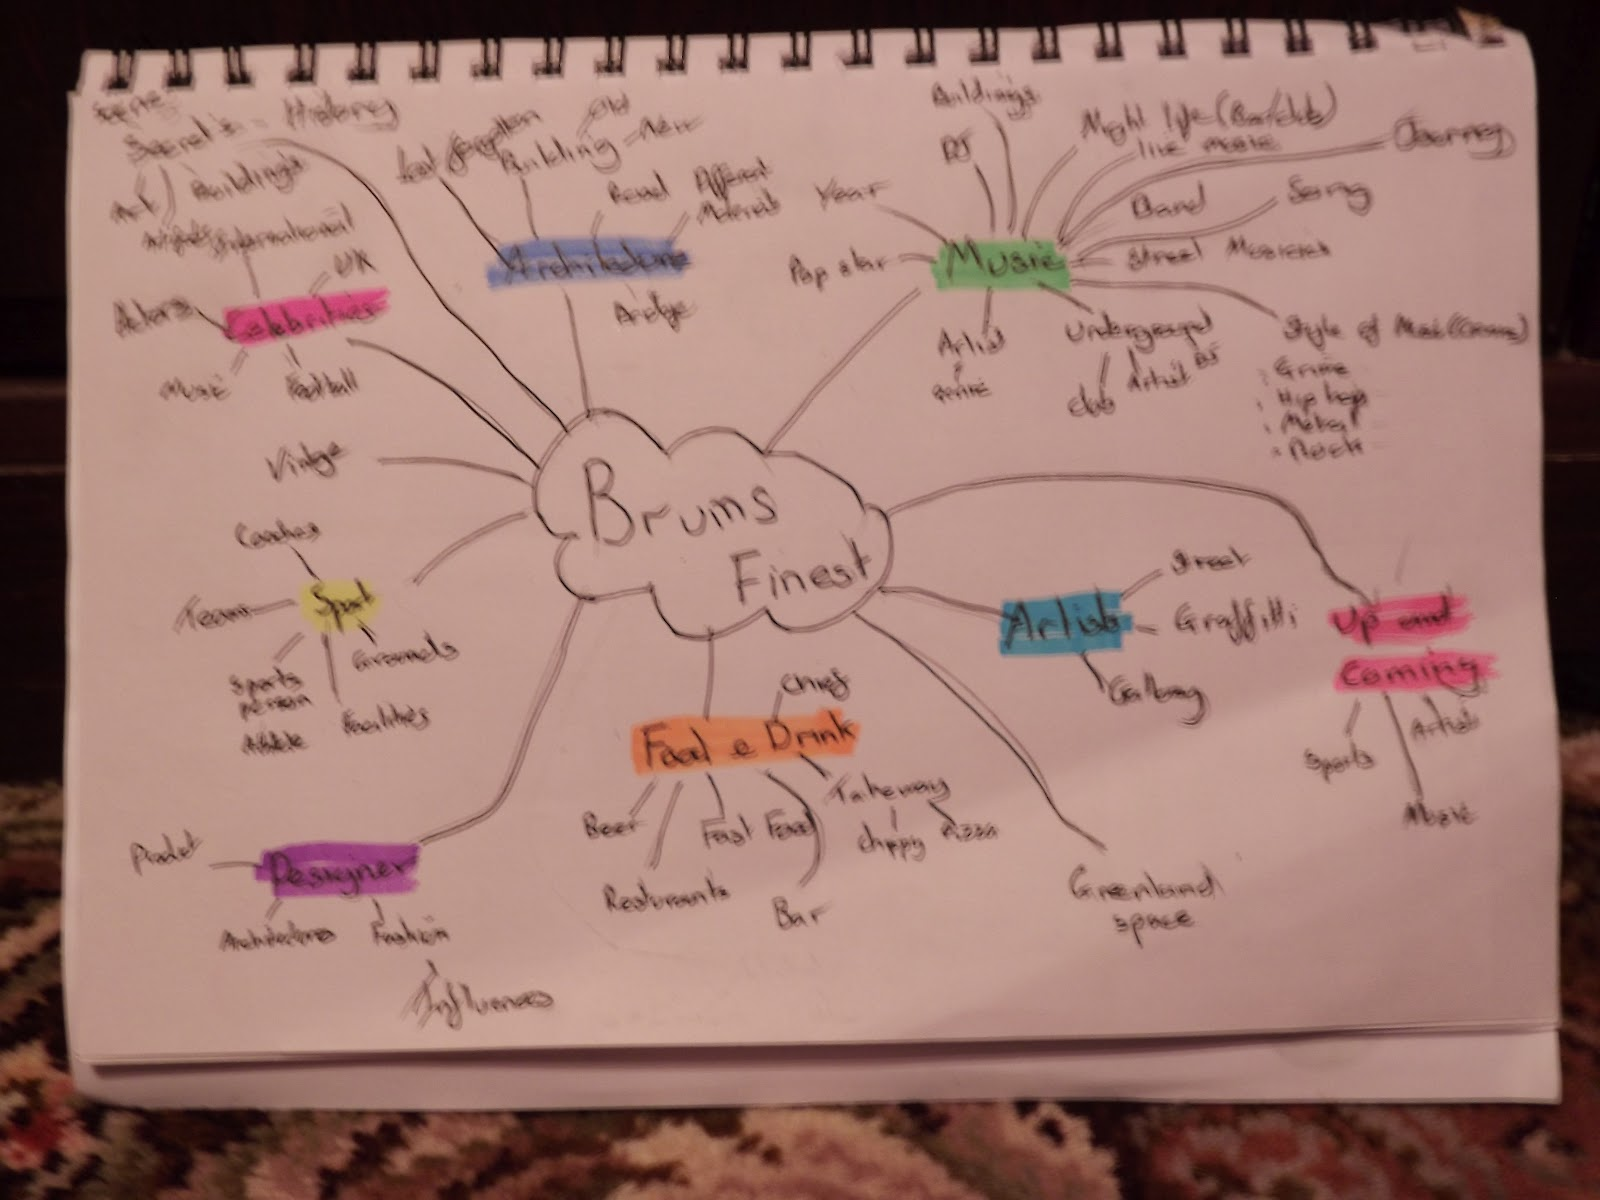 mind map of initial ideas for magazine theme